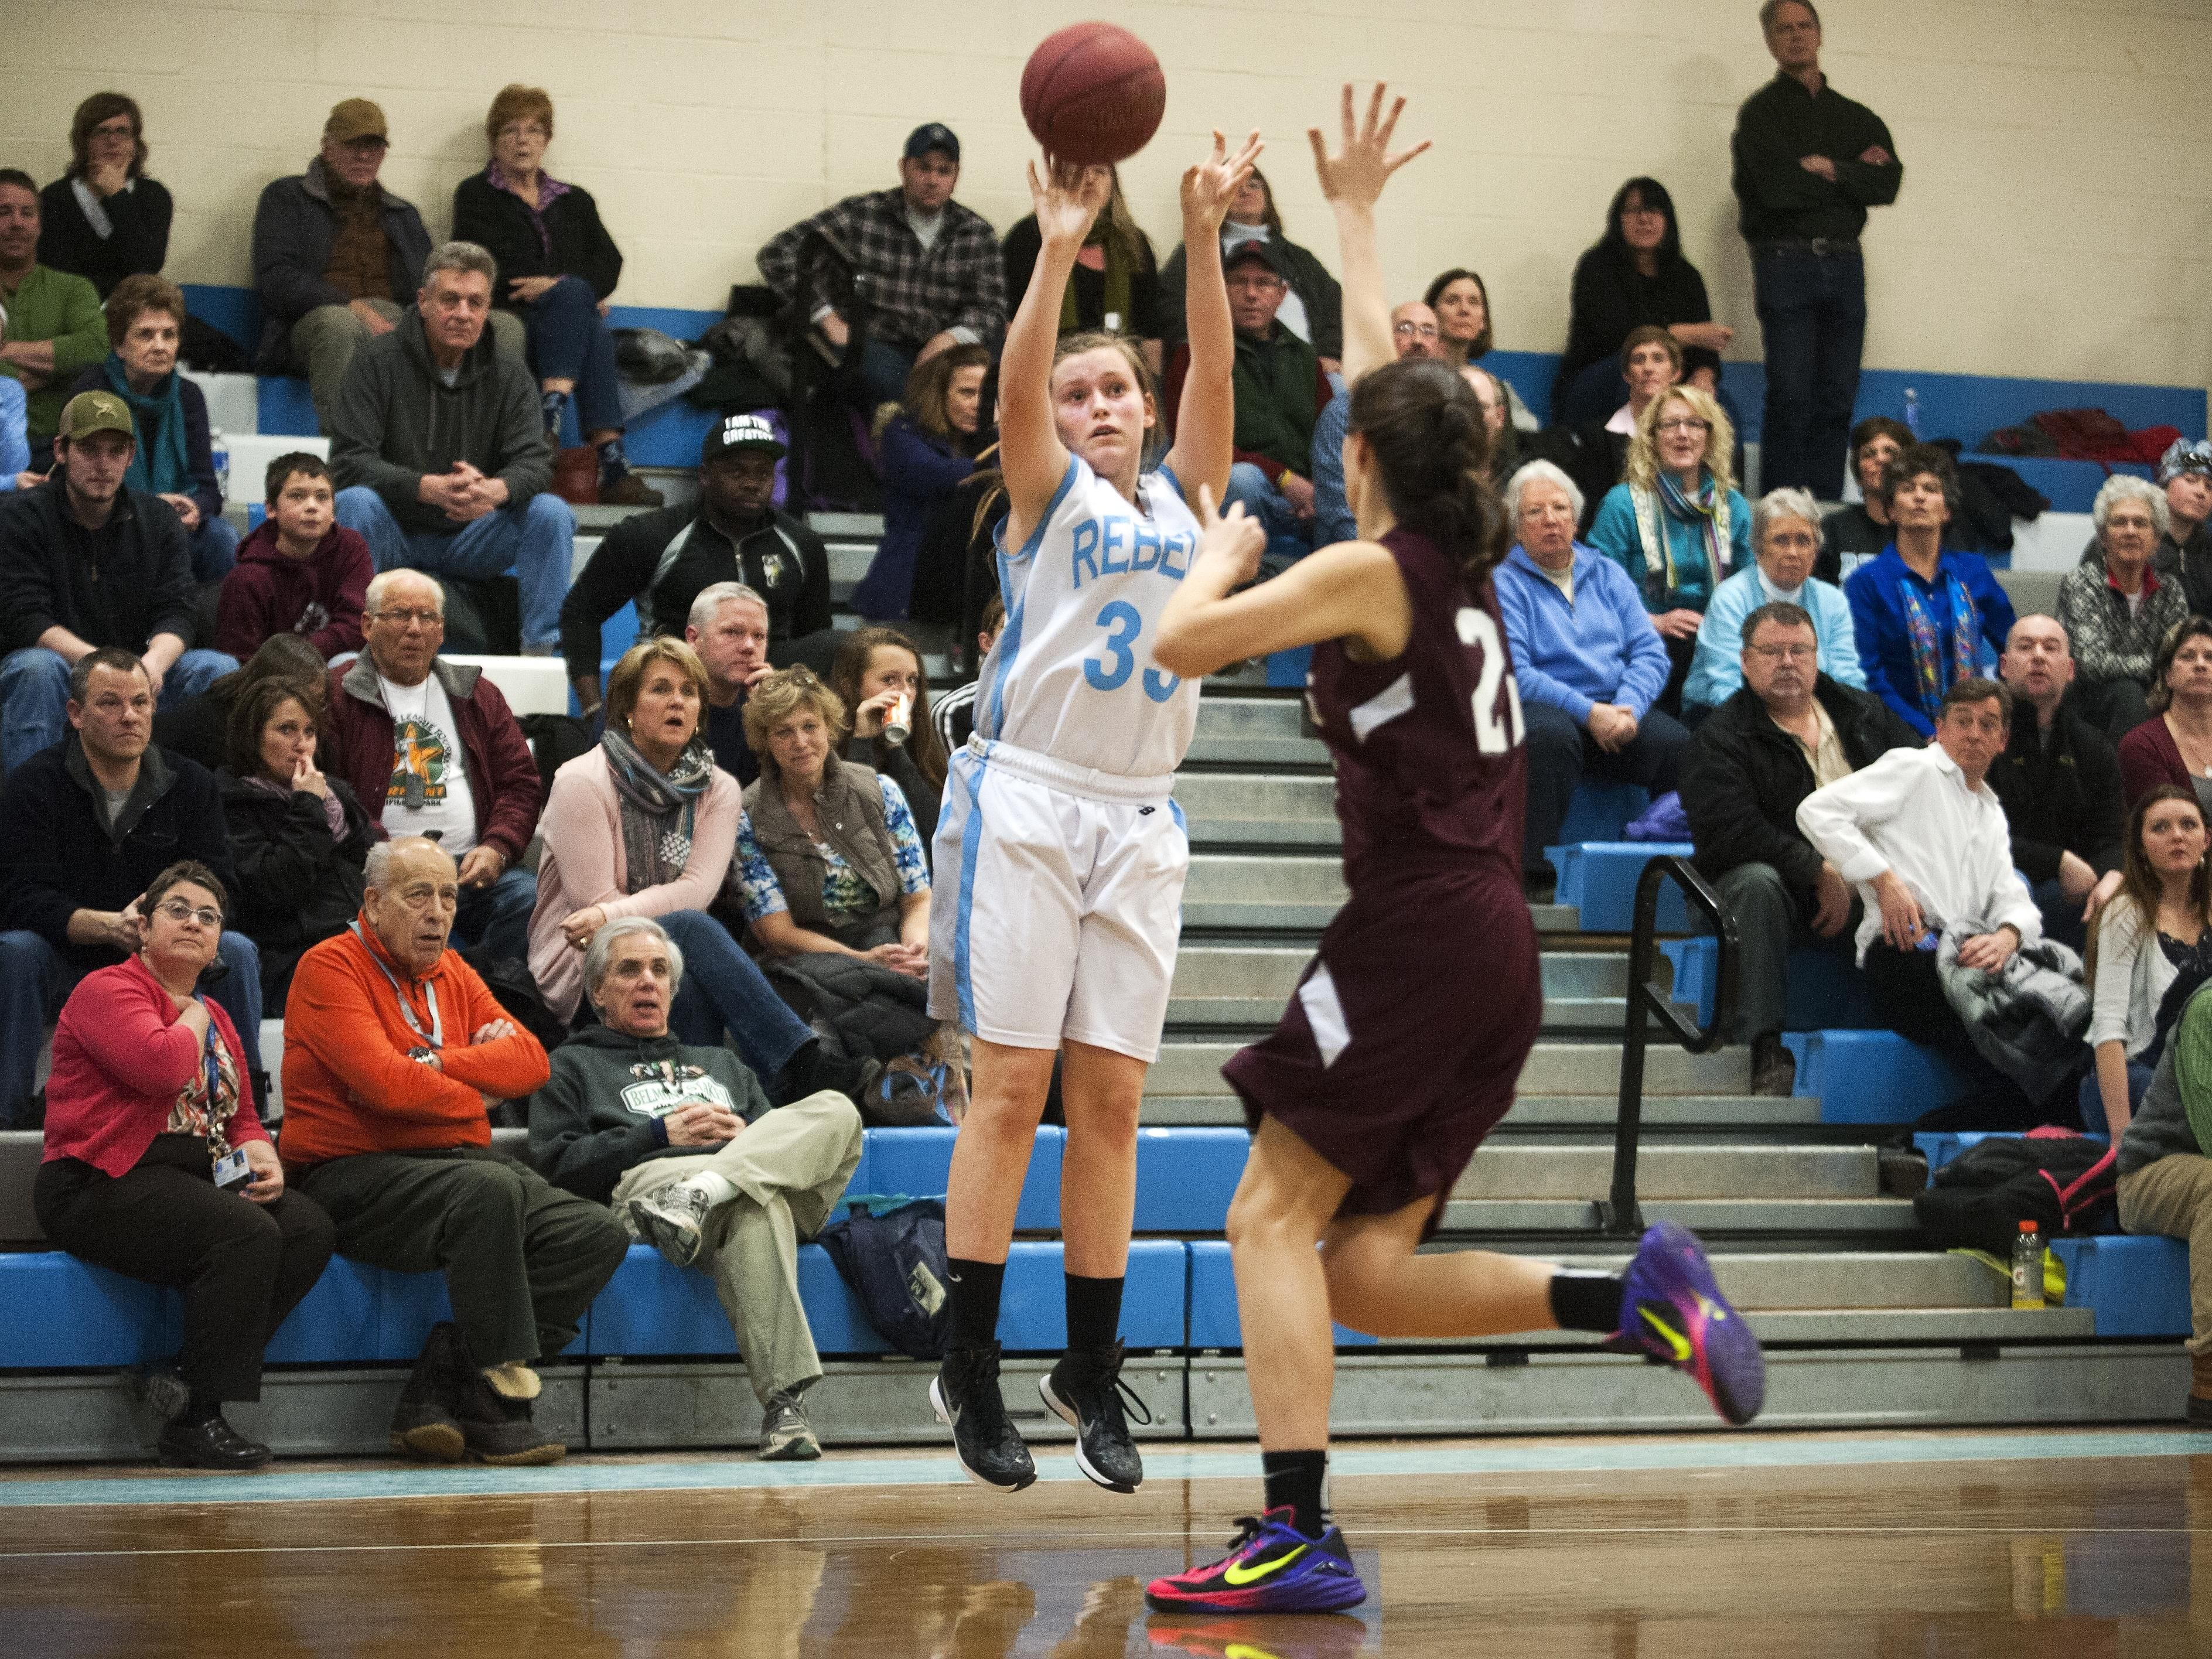 South Burlington's Emma MacDonough (33) takes a 3-point shot during a high school girls basketball game last year.